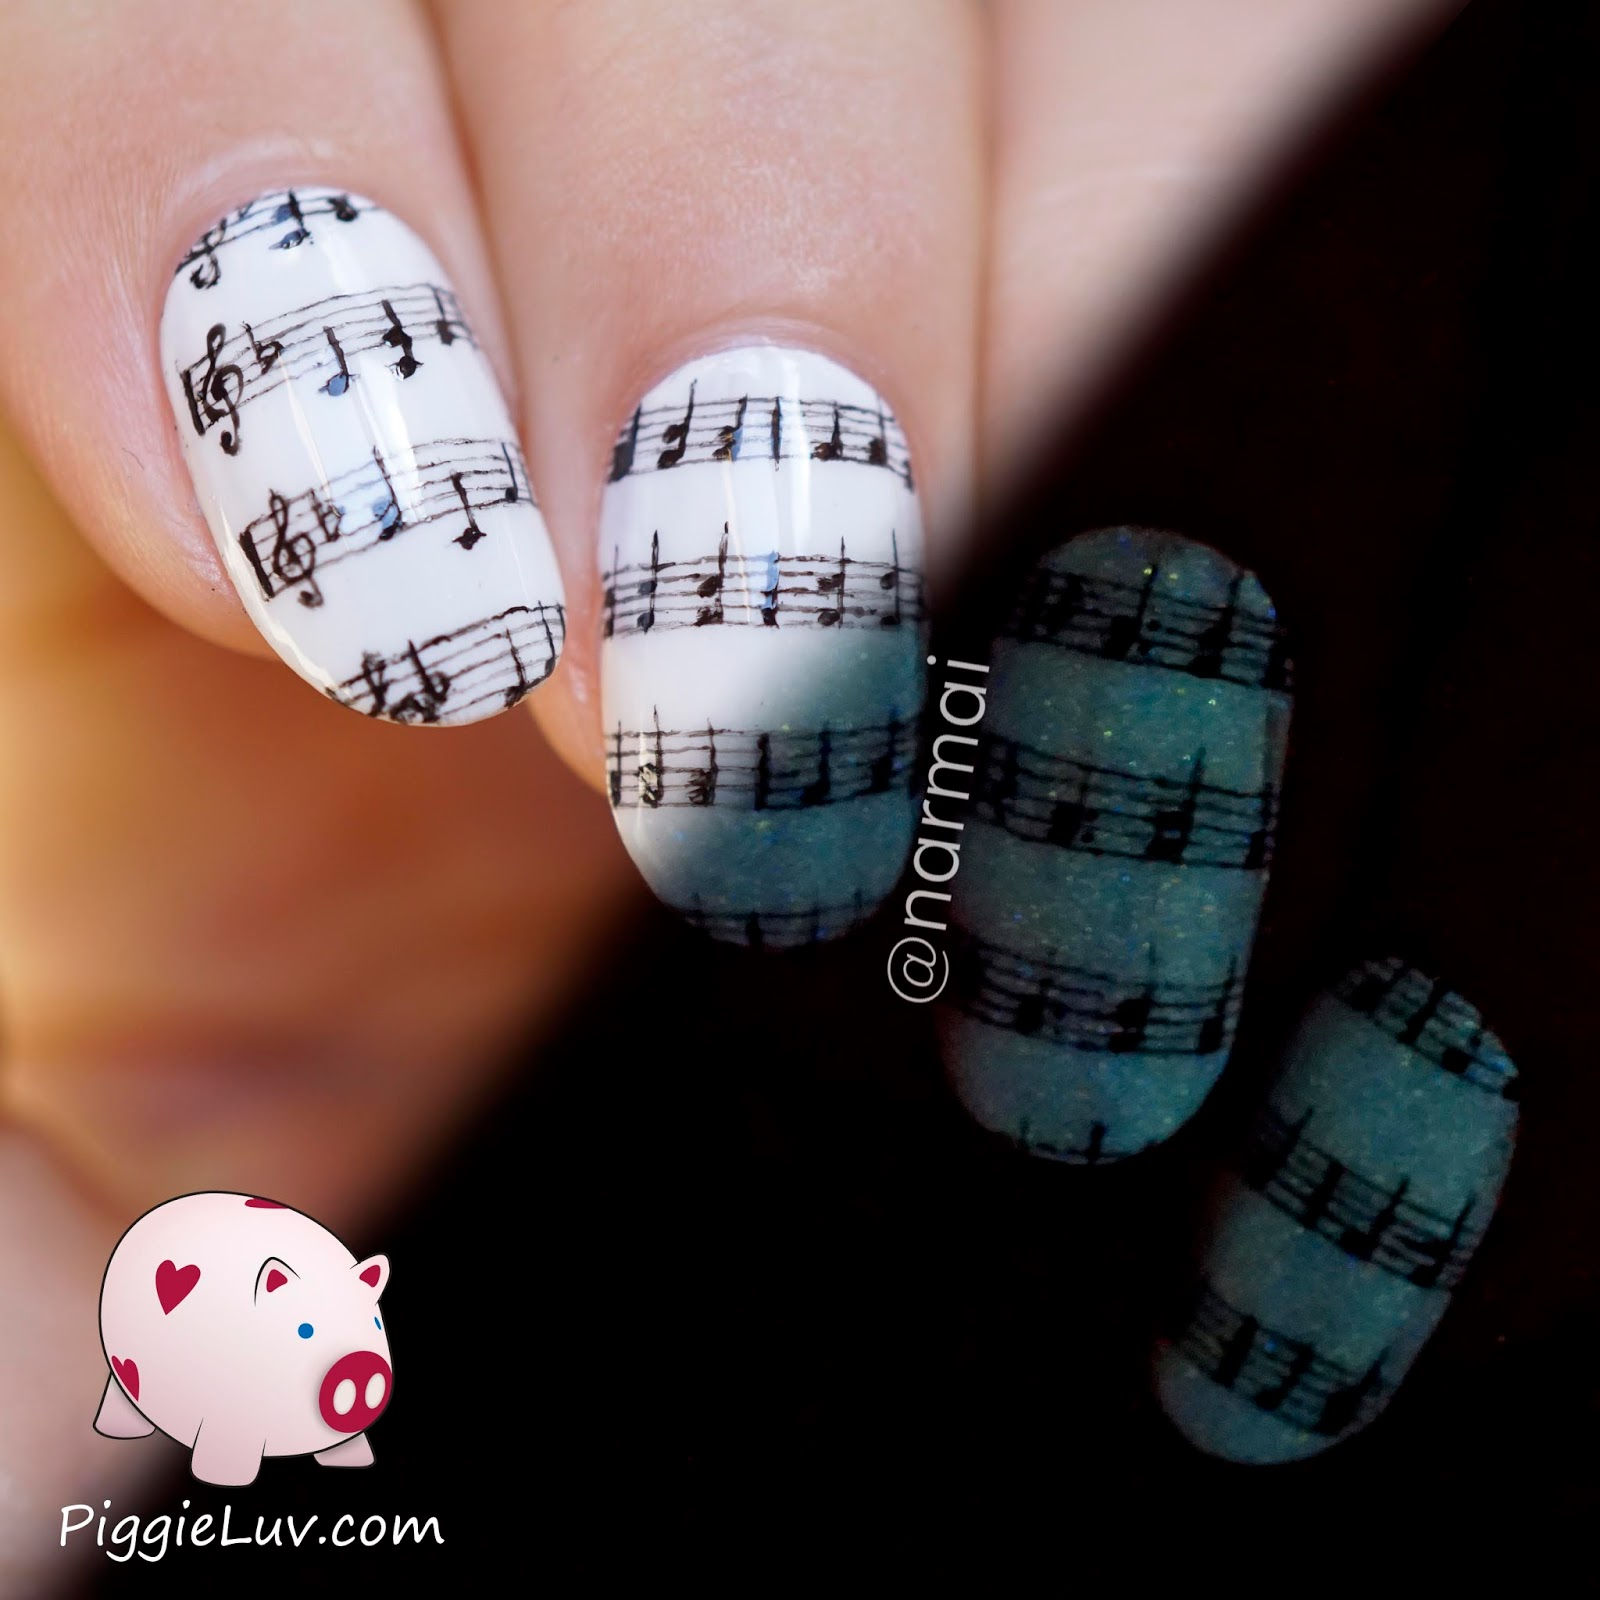 Piggieluv 1 nail art design 4 ways video tutorial 1 nail art design 4 ways video tutorial prinsesfo Gallery